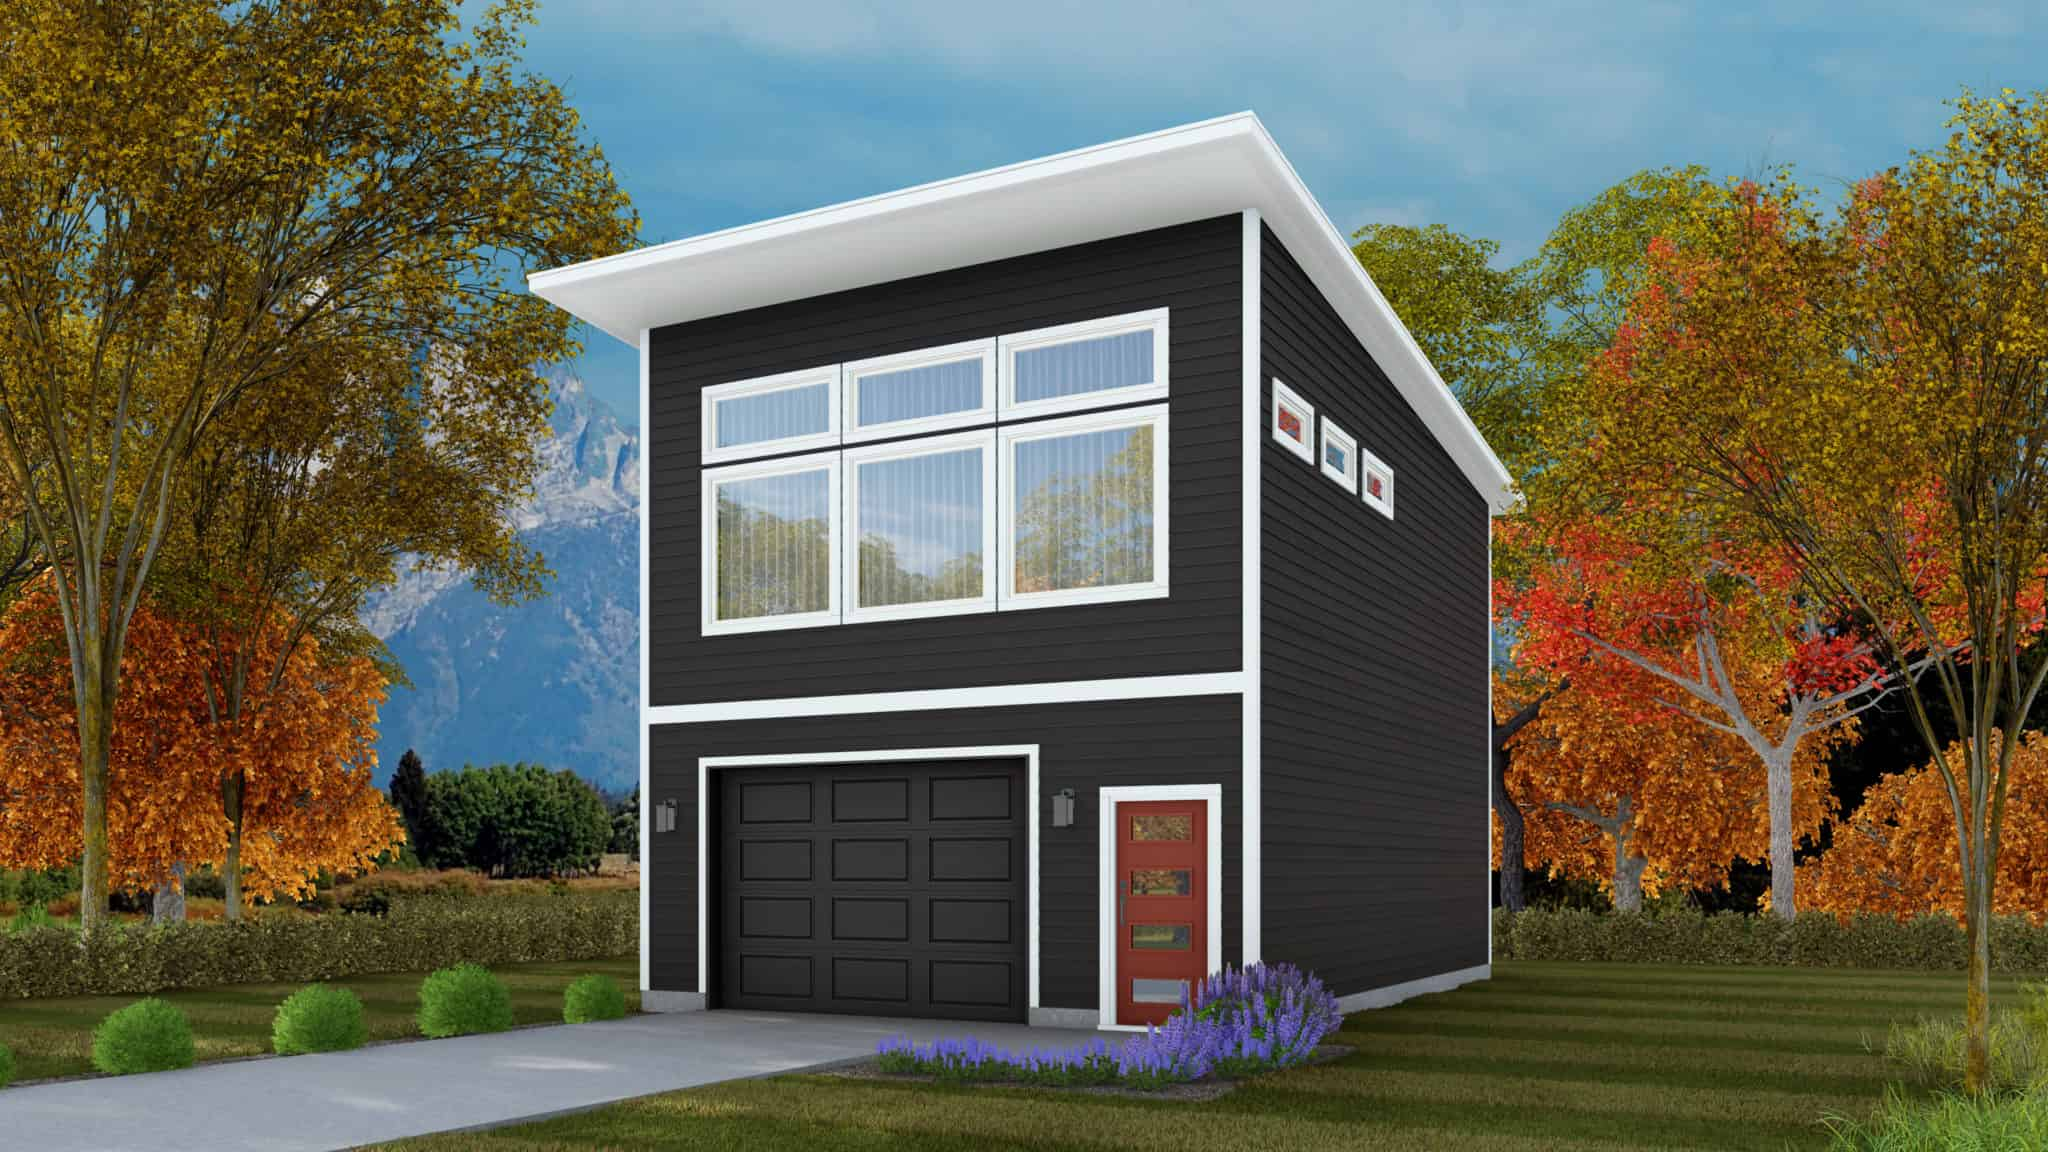 Keyport Home Plan - ADU Garage